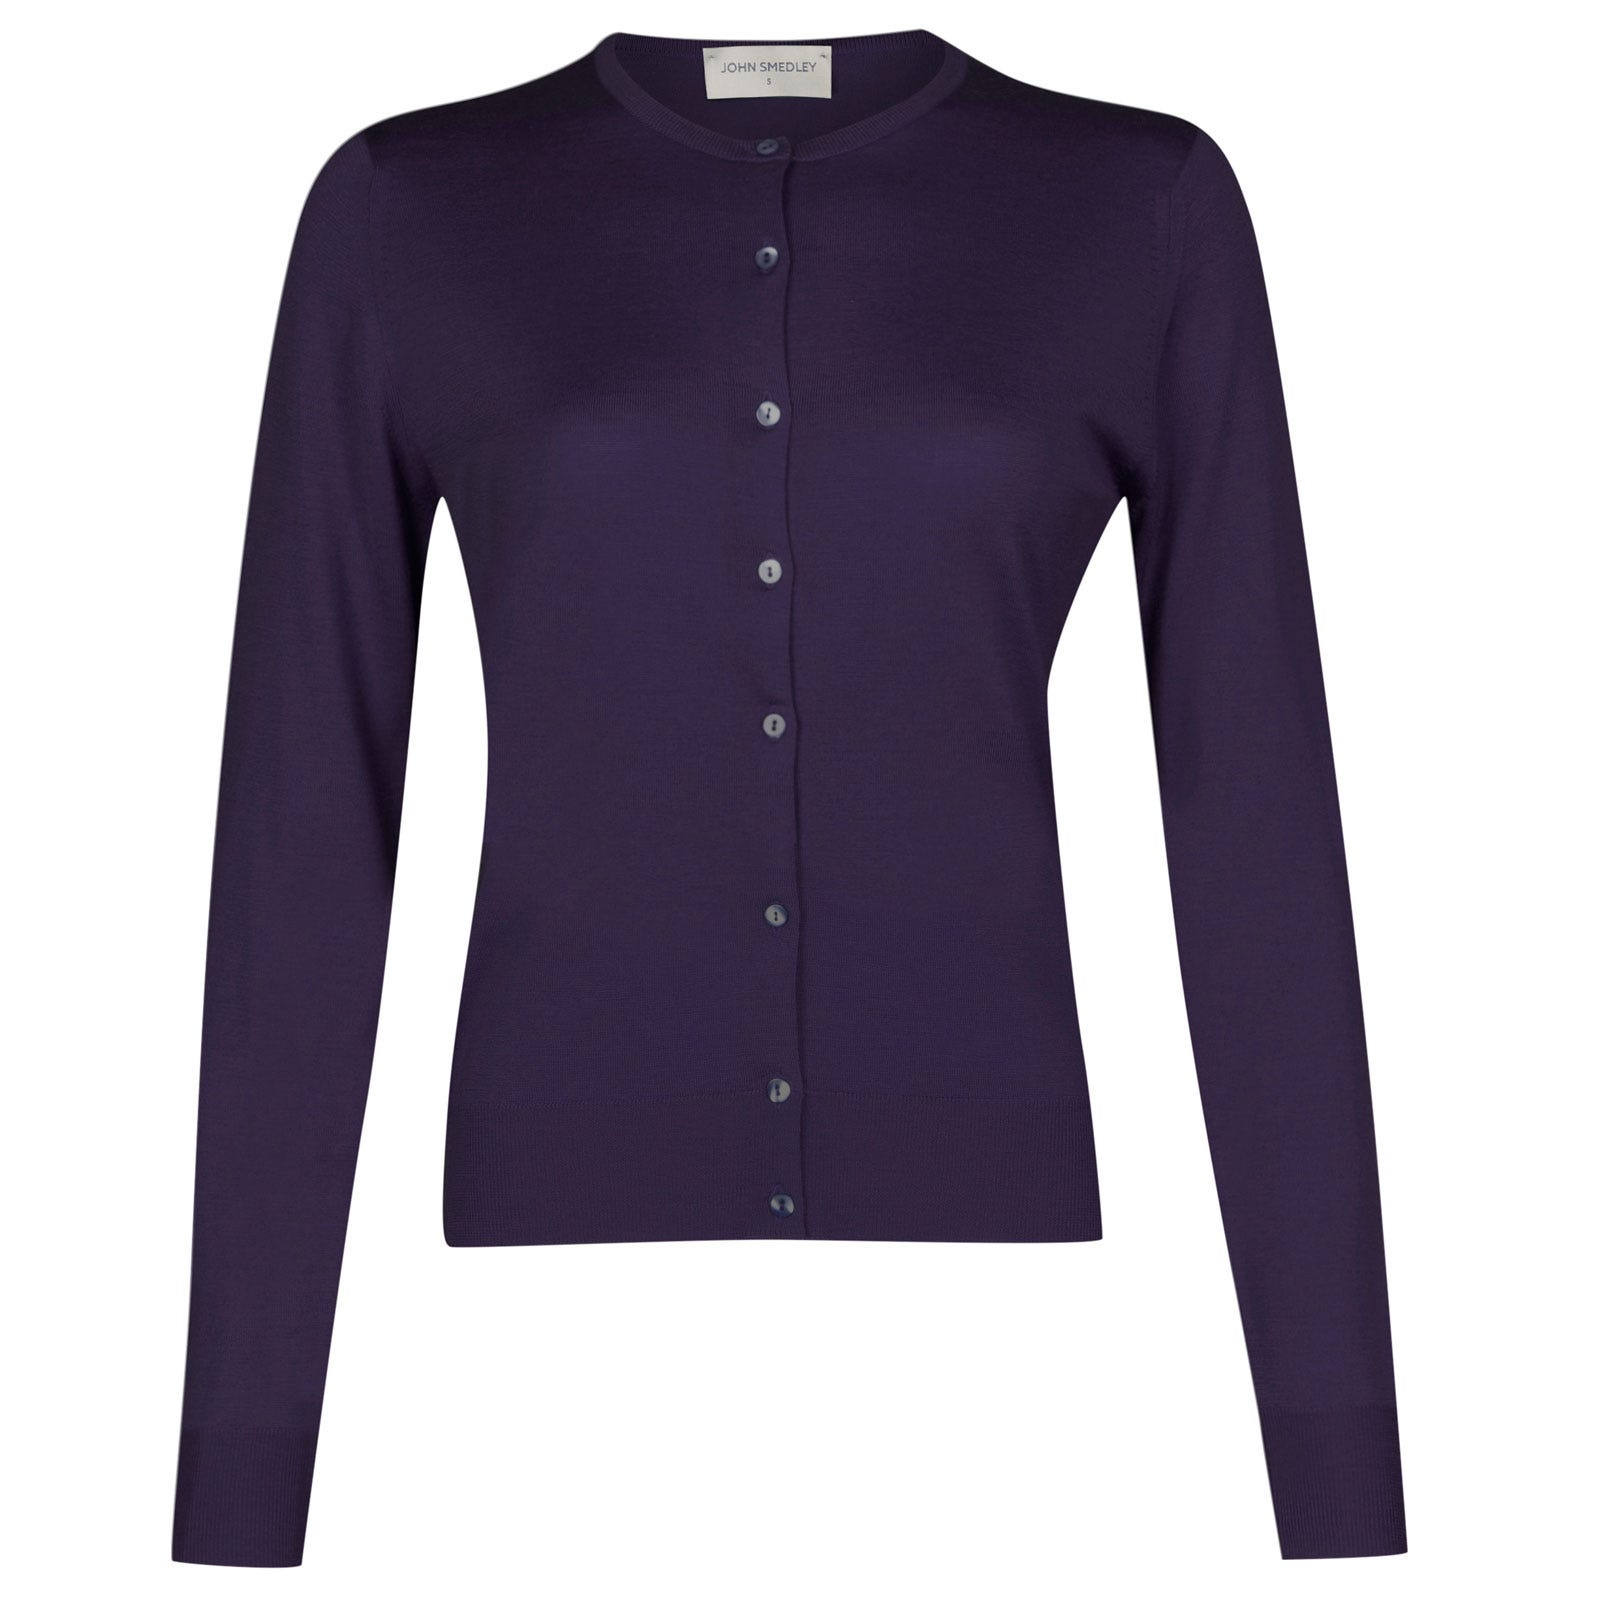 John Smedley pansy Merino Wool Cardigan in Elderberry Purple-L